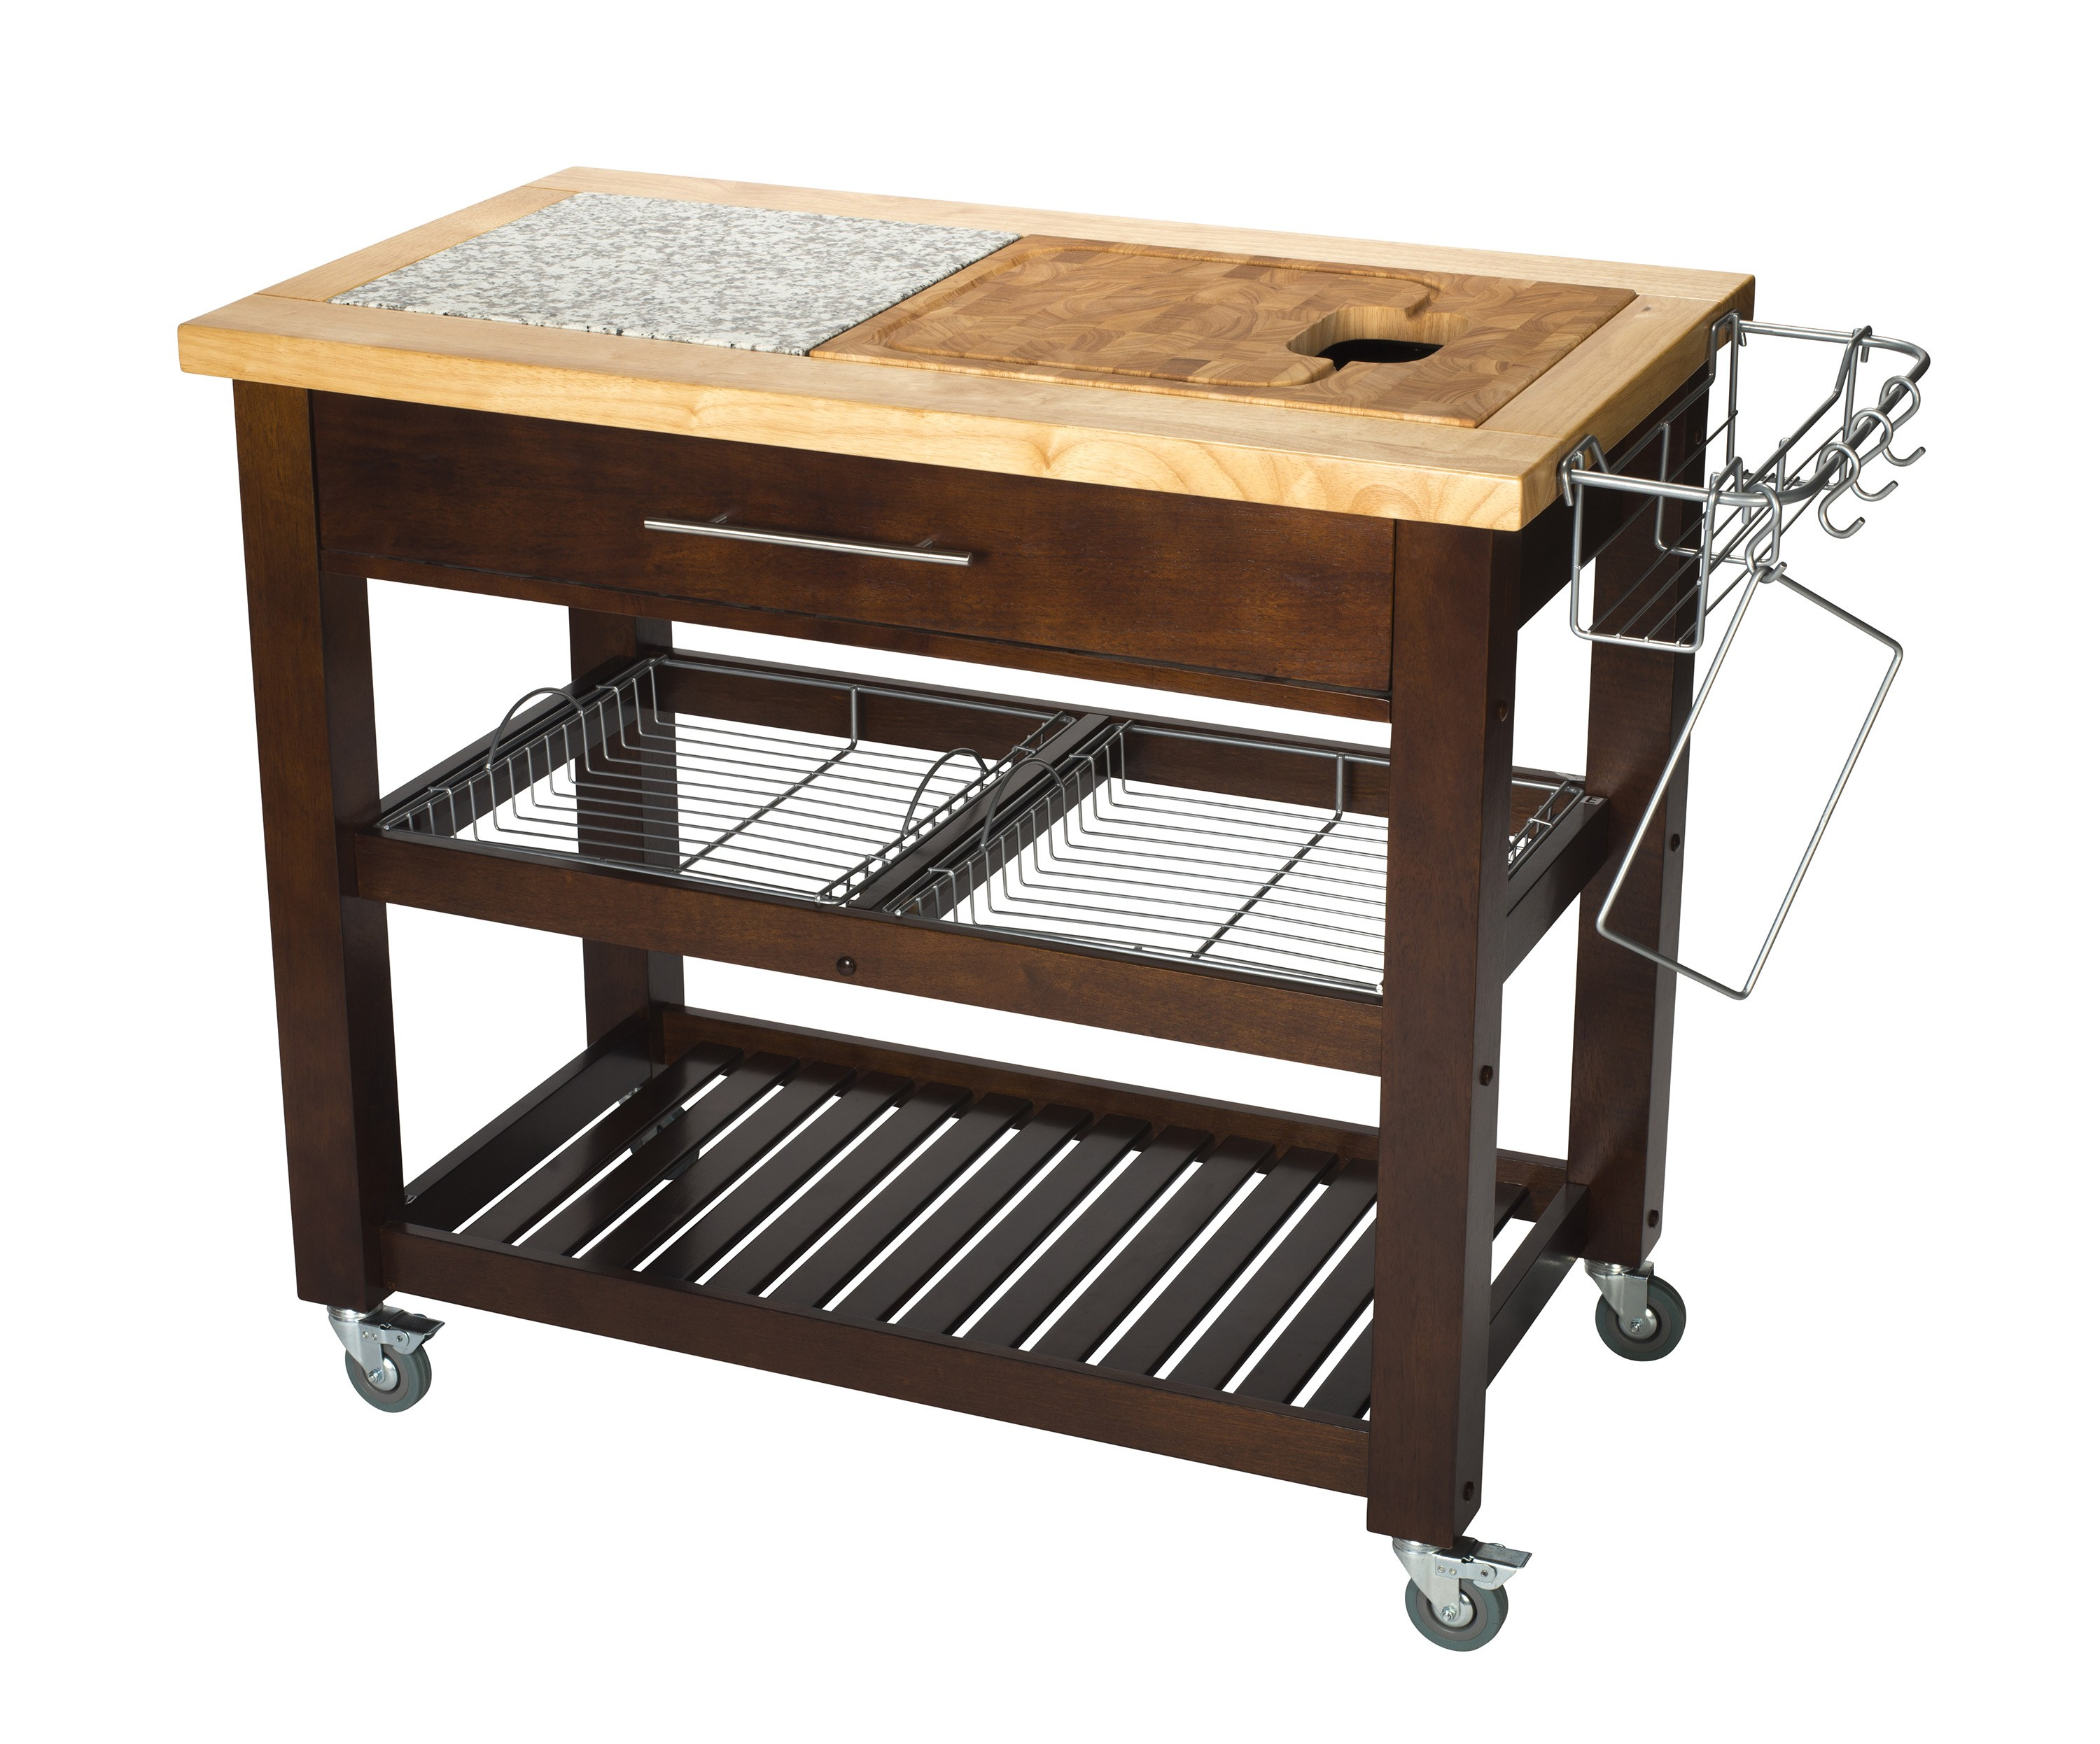 Chris & Chris Granite & Rubberwood-Top  Work Station - 24x40, Espresso